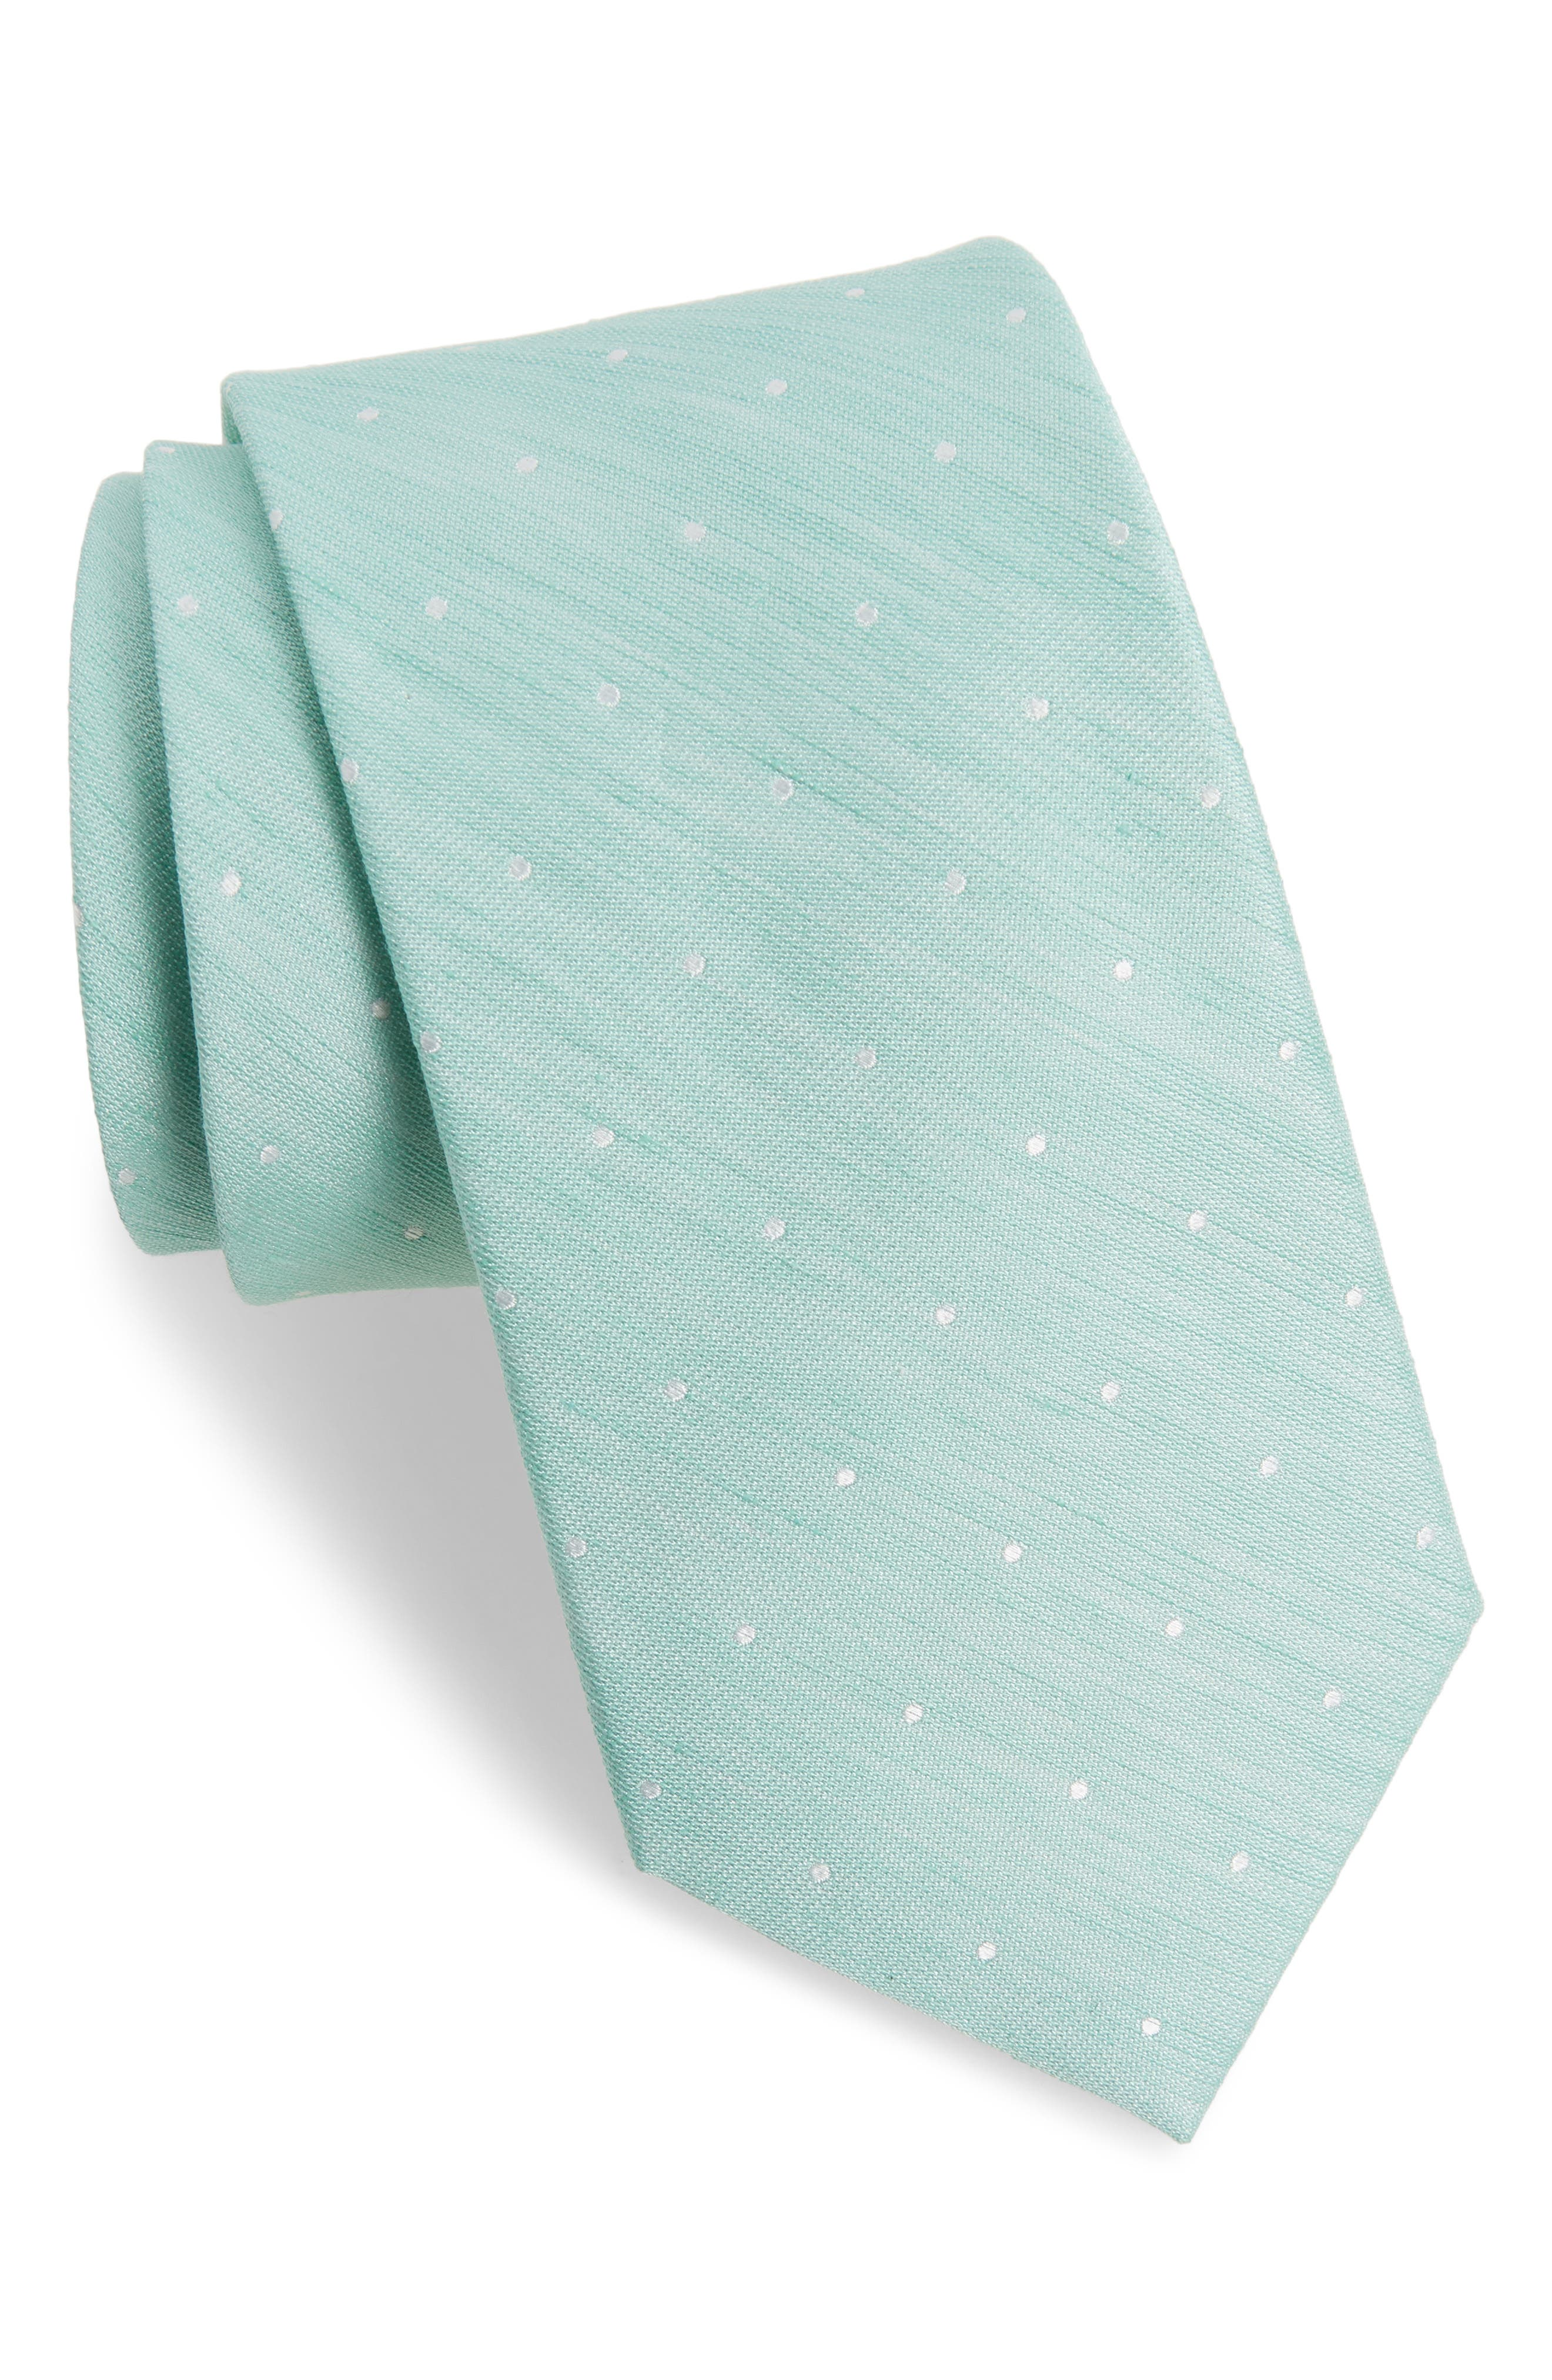 Alternate Image 1 Selected - The Tie Bar Dot Silk & Linen Tie (X-Long)